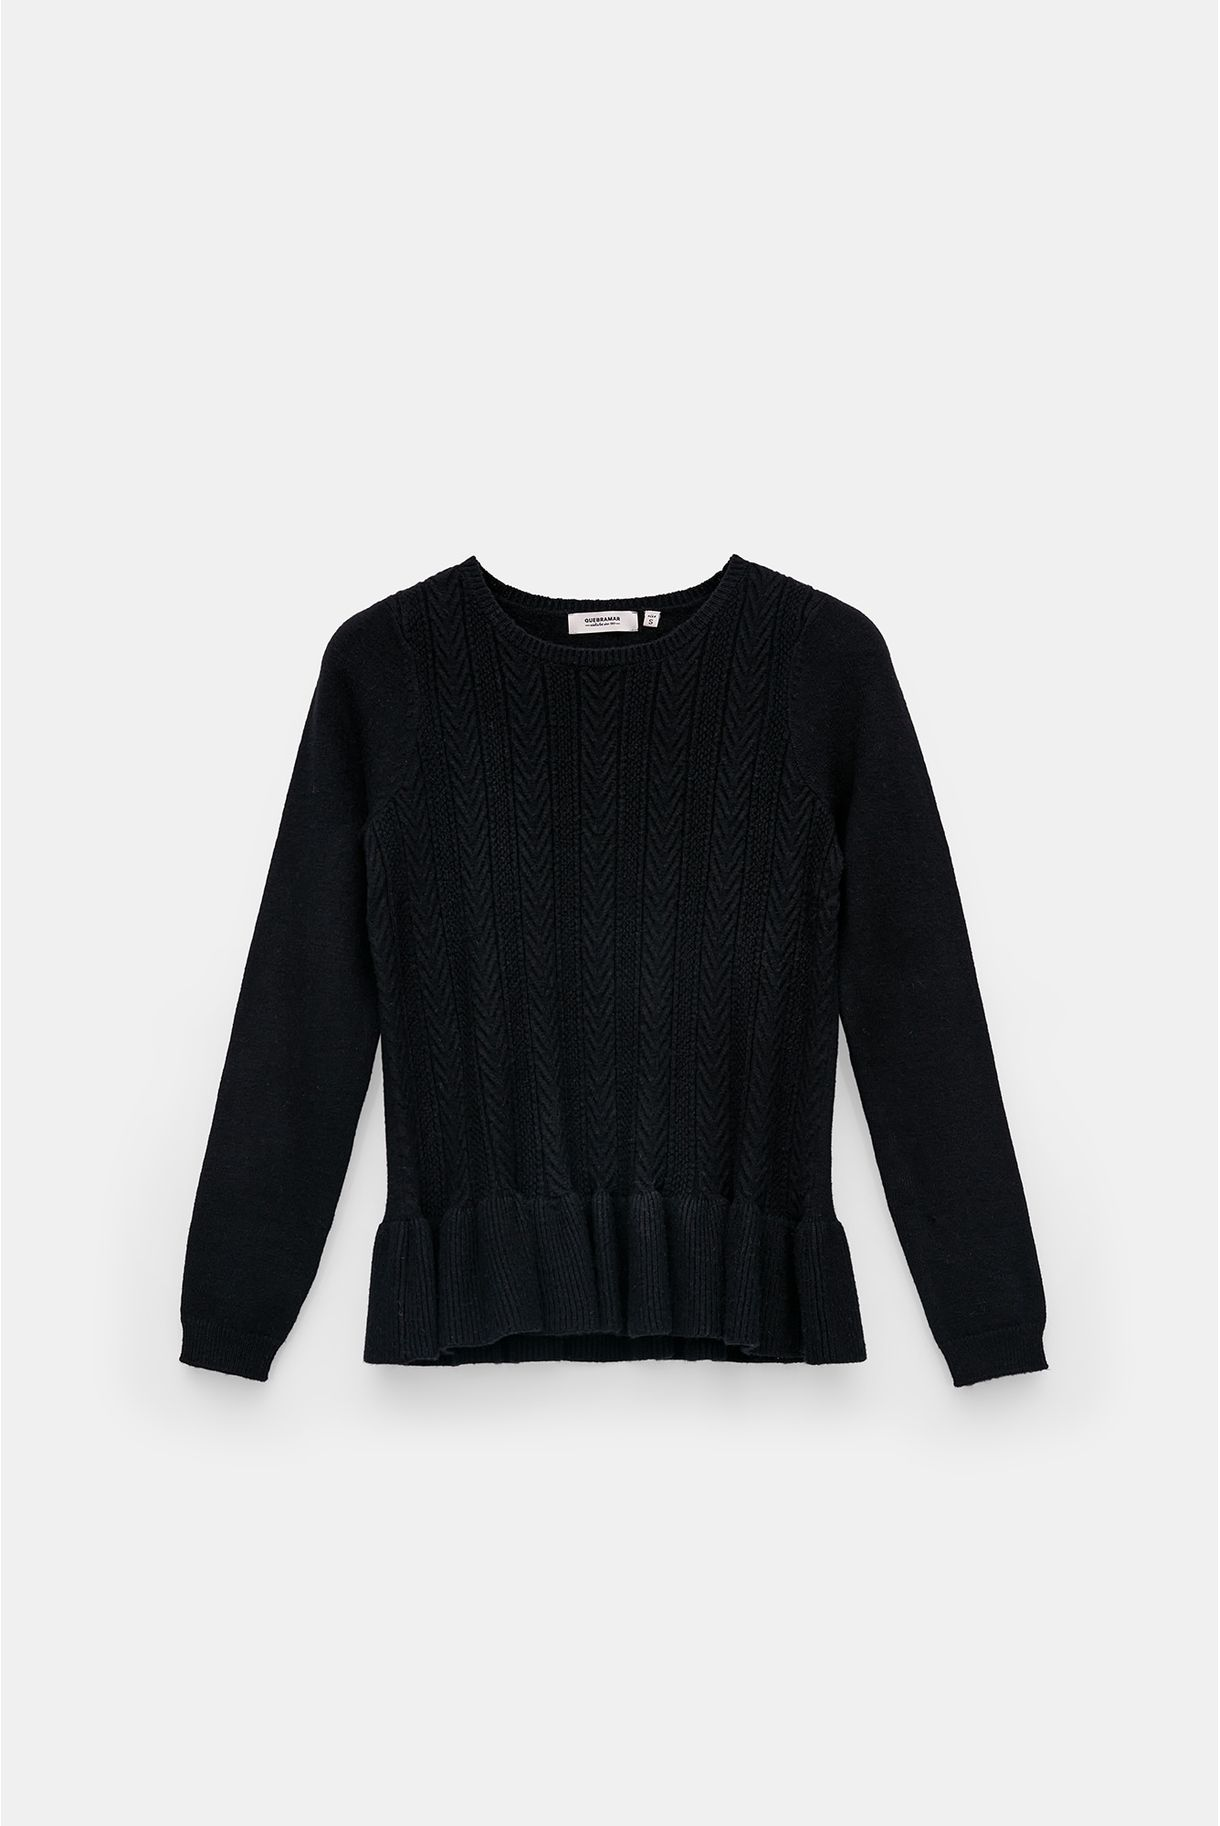 SWEATSHIRT WITH RIFF IN THE STRAP